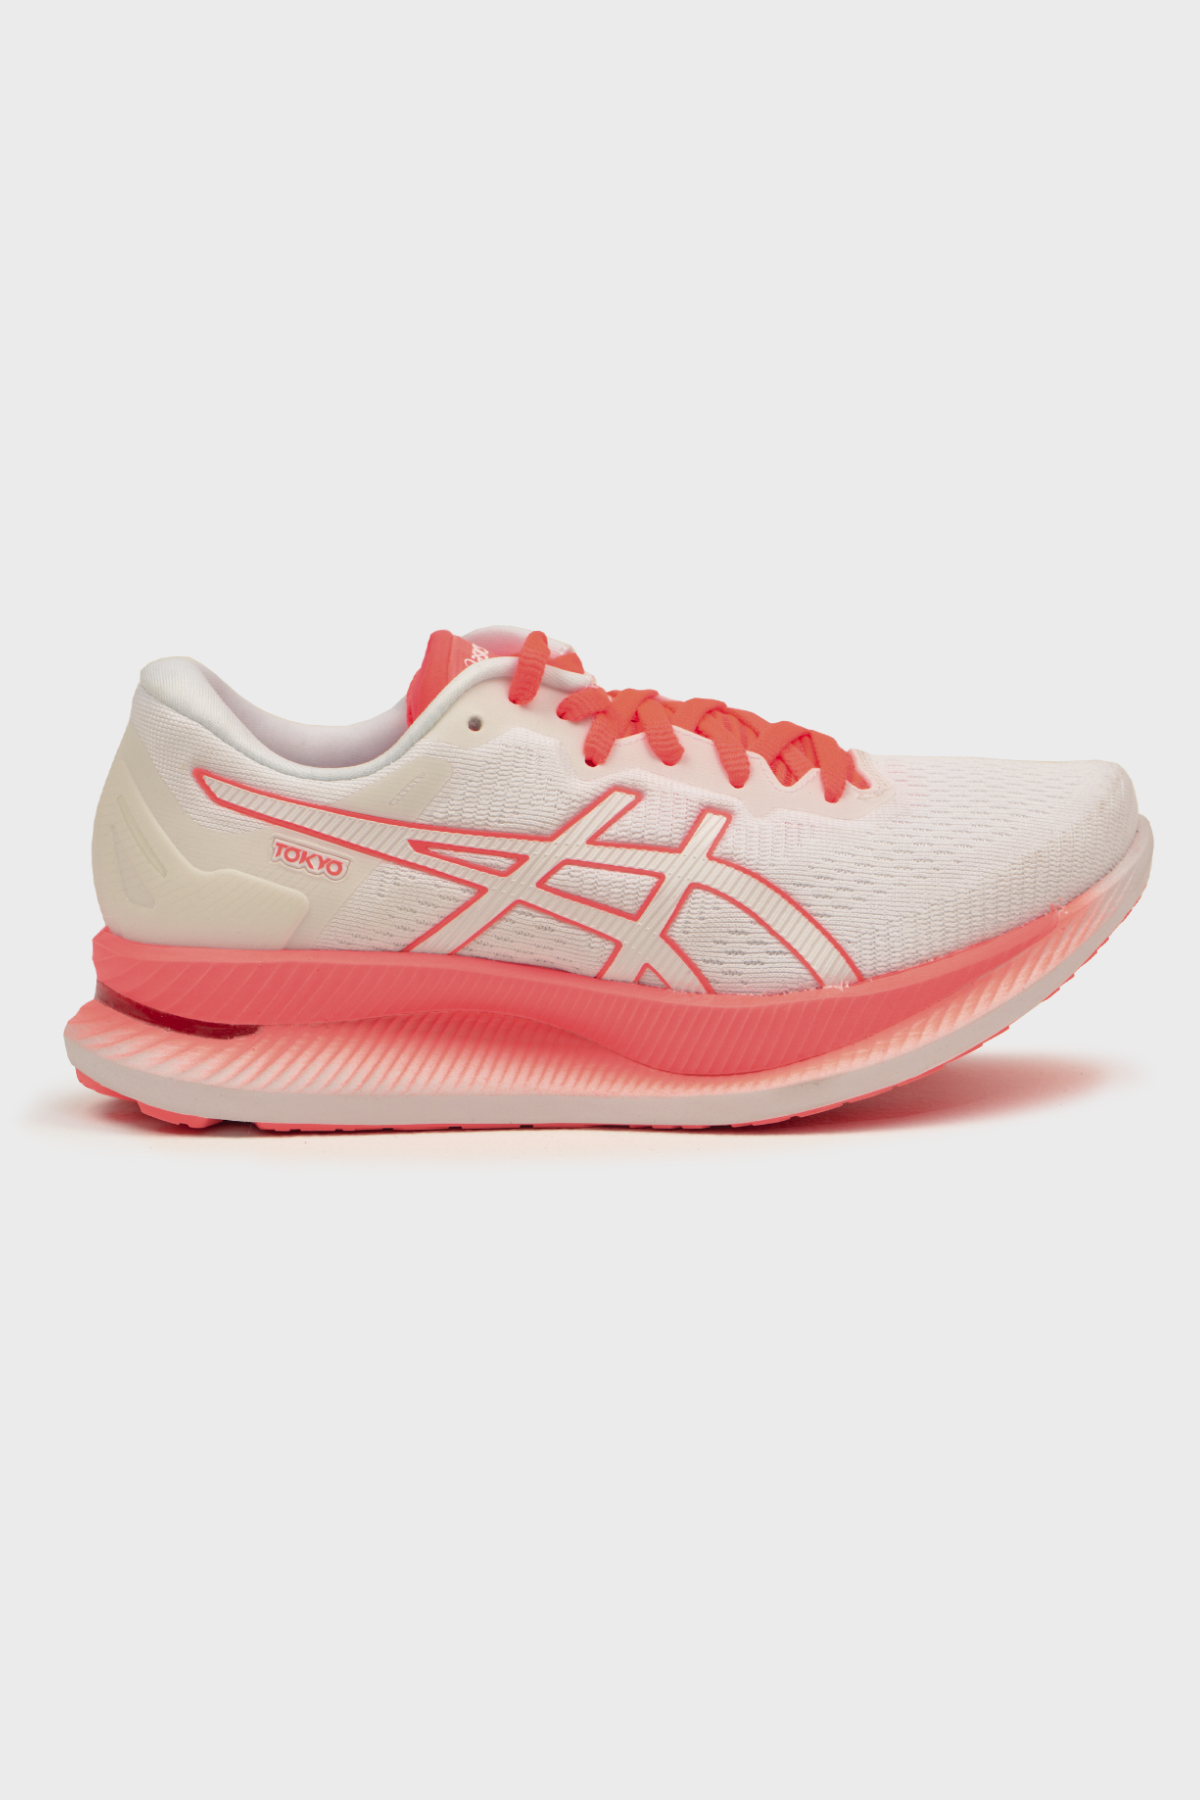 ASICS W - W GLIDERIDE - WHITE SUNRISE RED